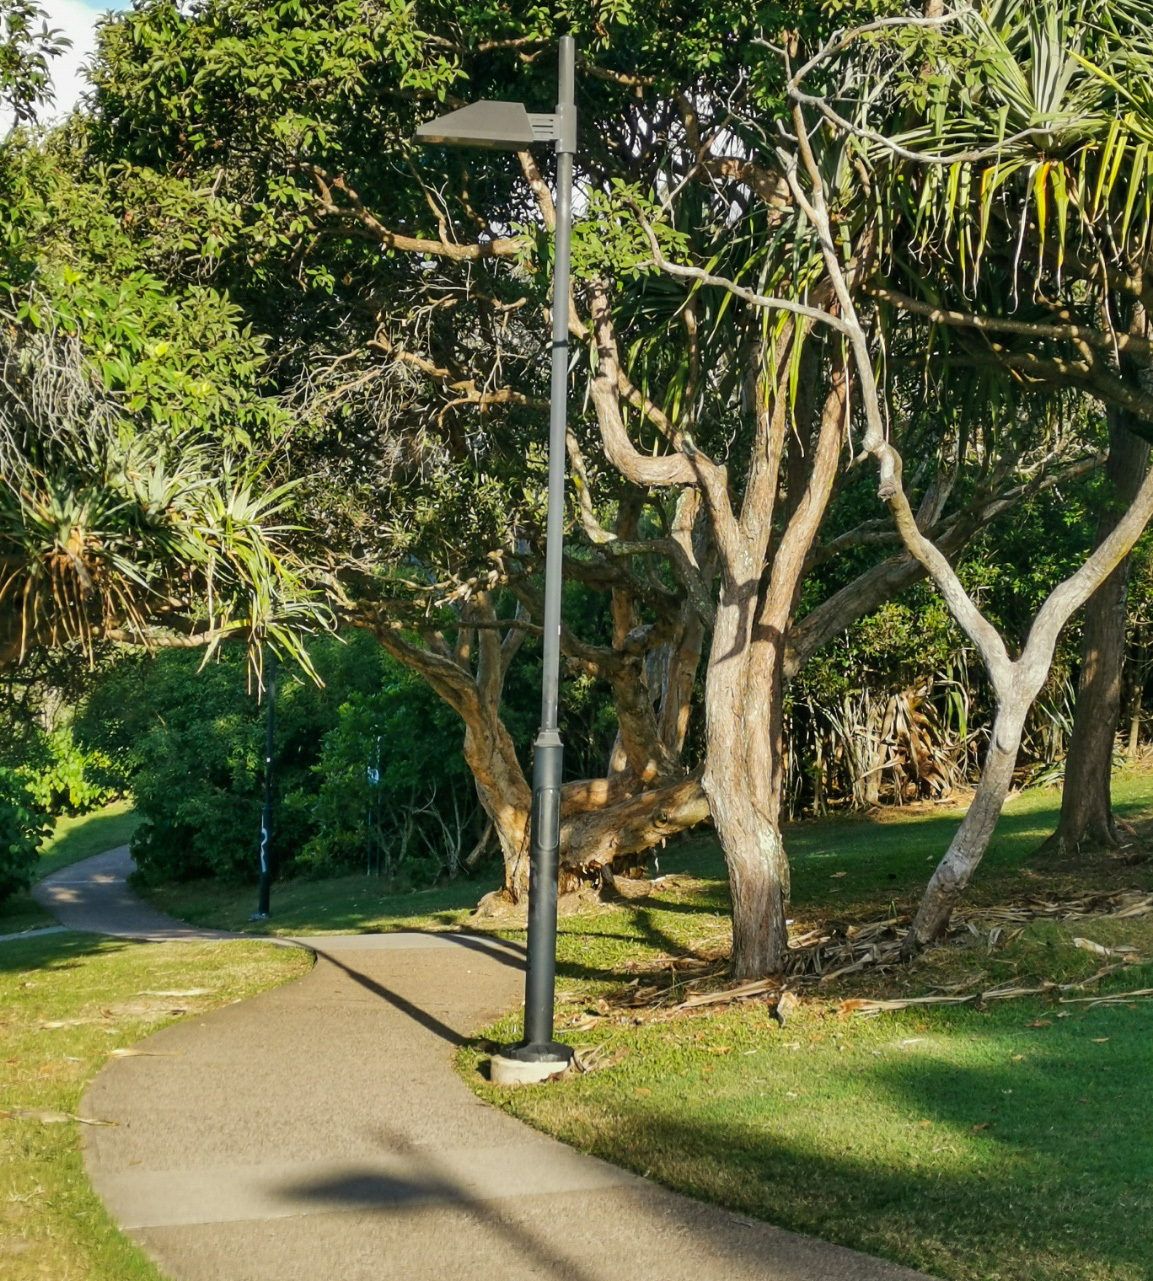 Trail Image for Coastal Pathway: Mooloolaba River to Alexander Headland